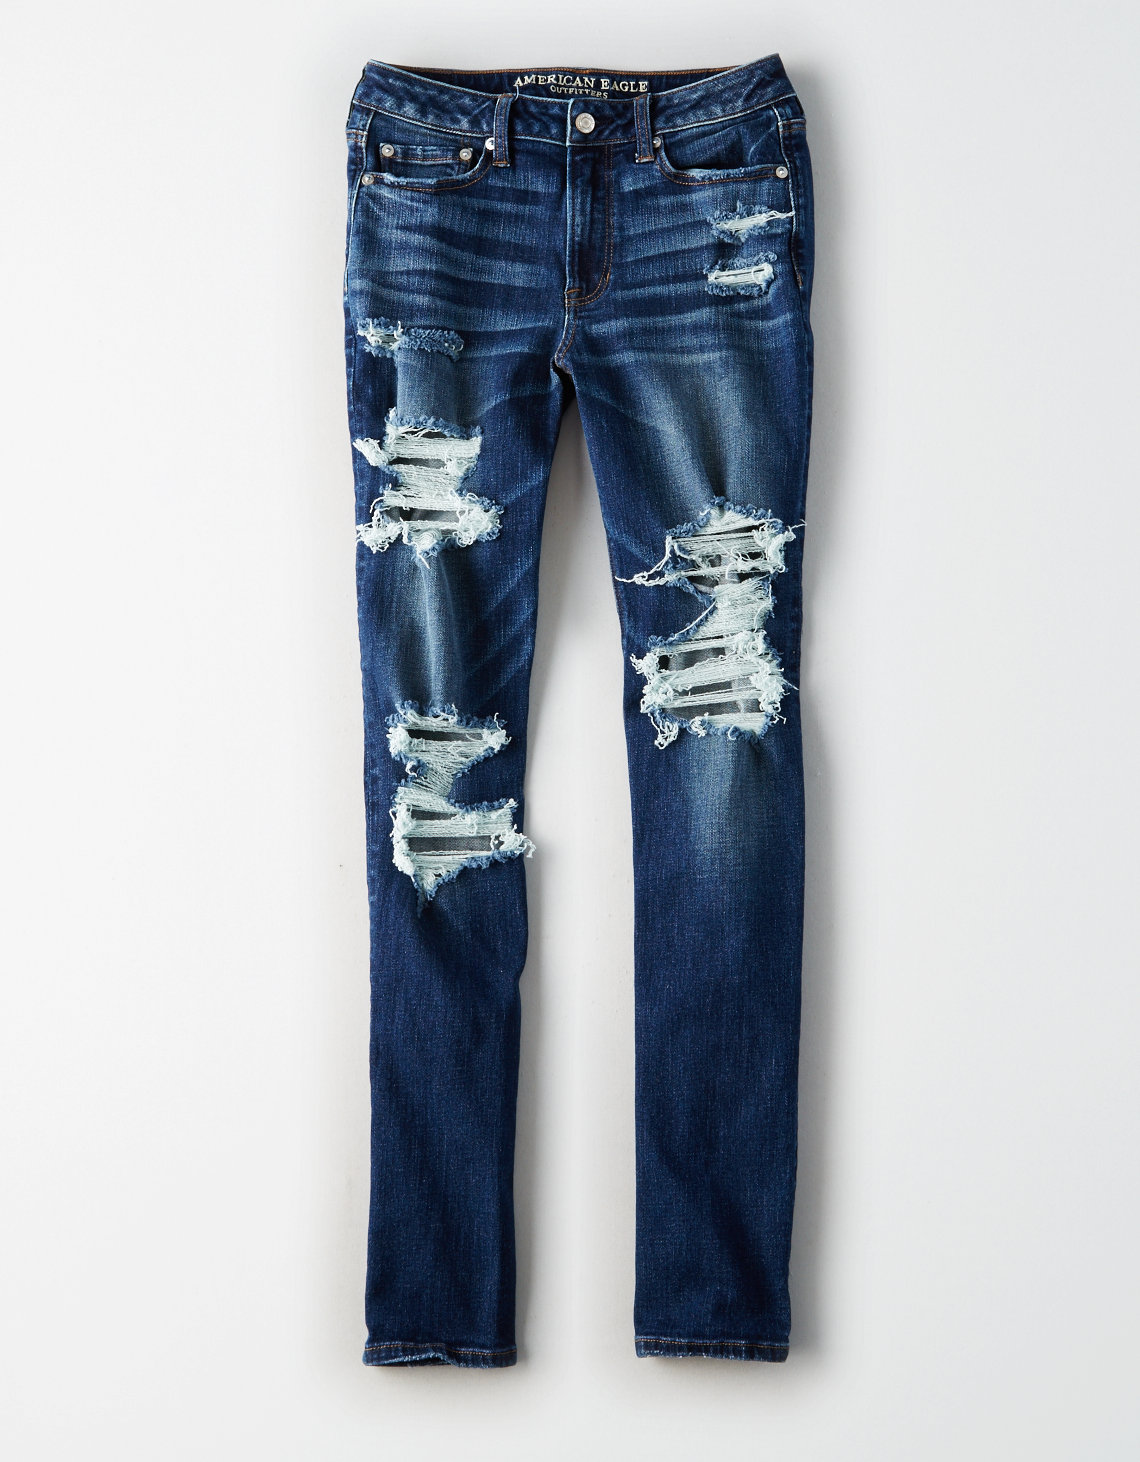 https://www.ae.com/women-jeans-ae-denim-x-high-waisted-slim-jean-destroy-is-a-thing/web/s-prod/0436_1392_934?cm=sUS-cUSD&catId=cat8230078